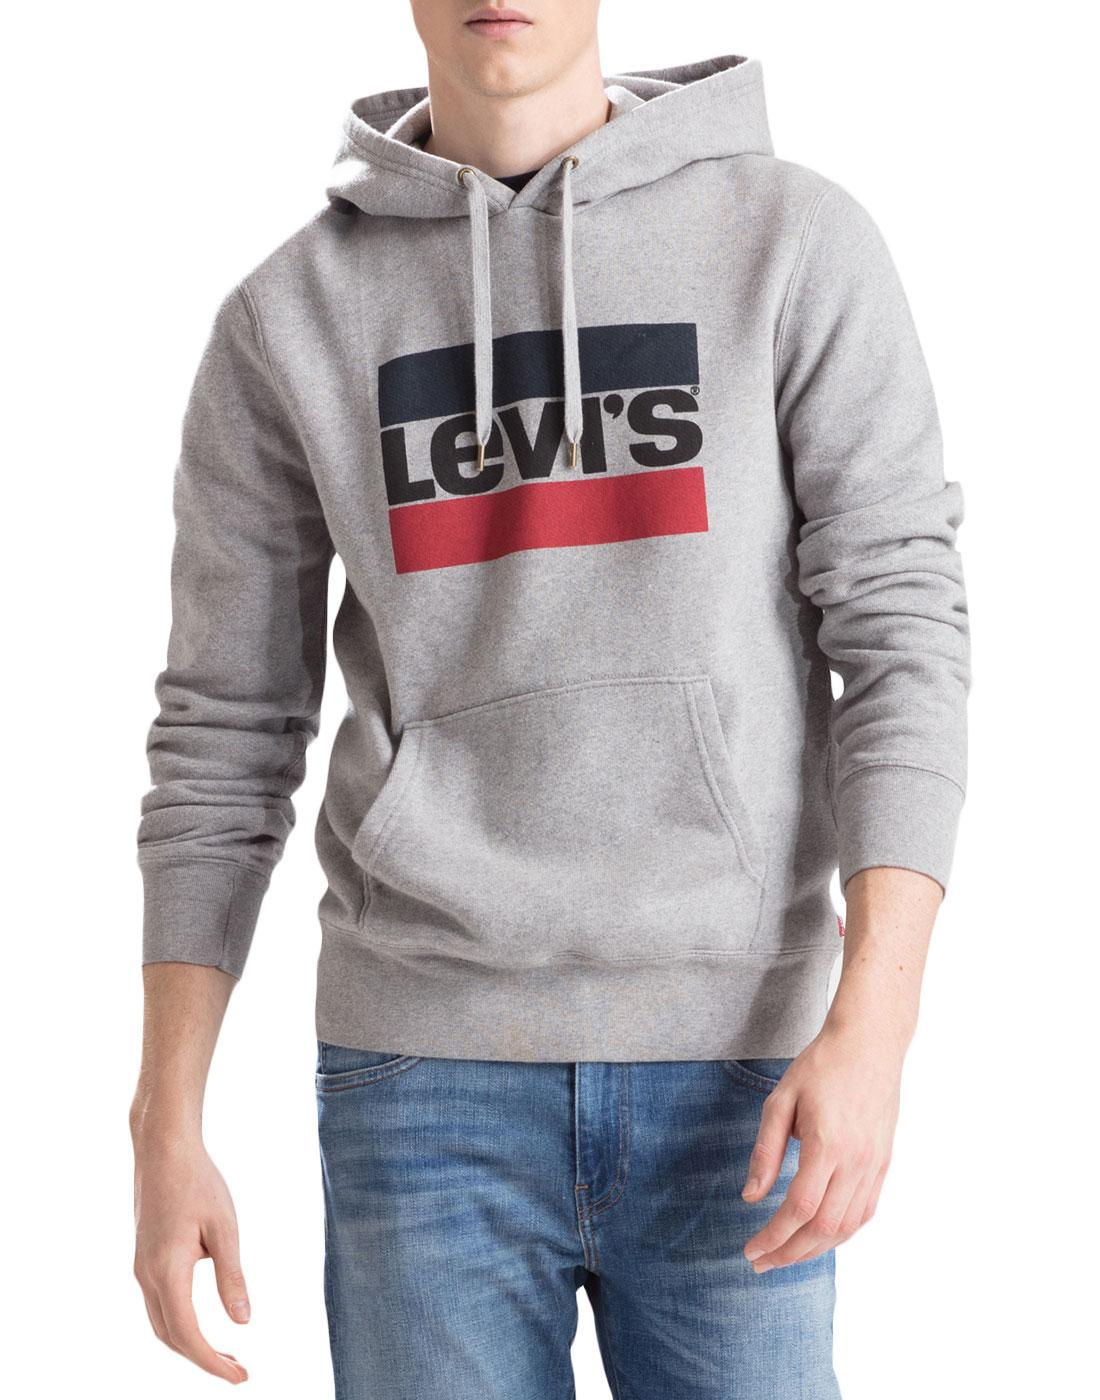 LEVI'S Retro 80s Sports Logo Hooded Sweatshirt